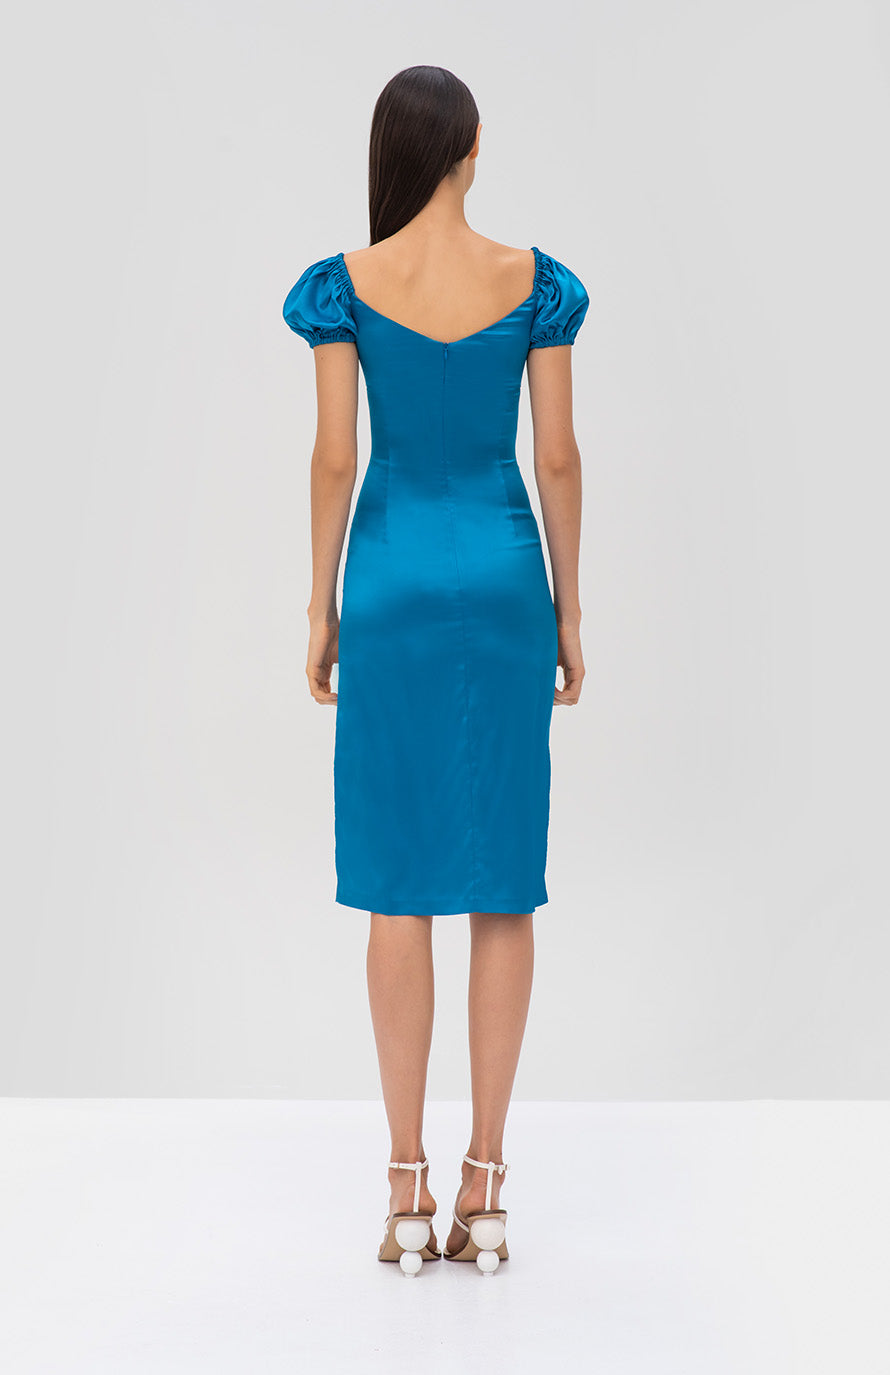 Alexis Cadiz Dress in Capri Blue from the Spring Summer 2019 Ready To Wear Collection - Rear View